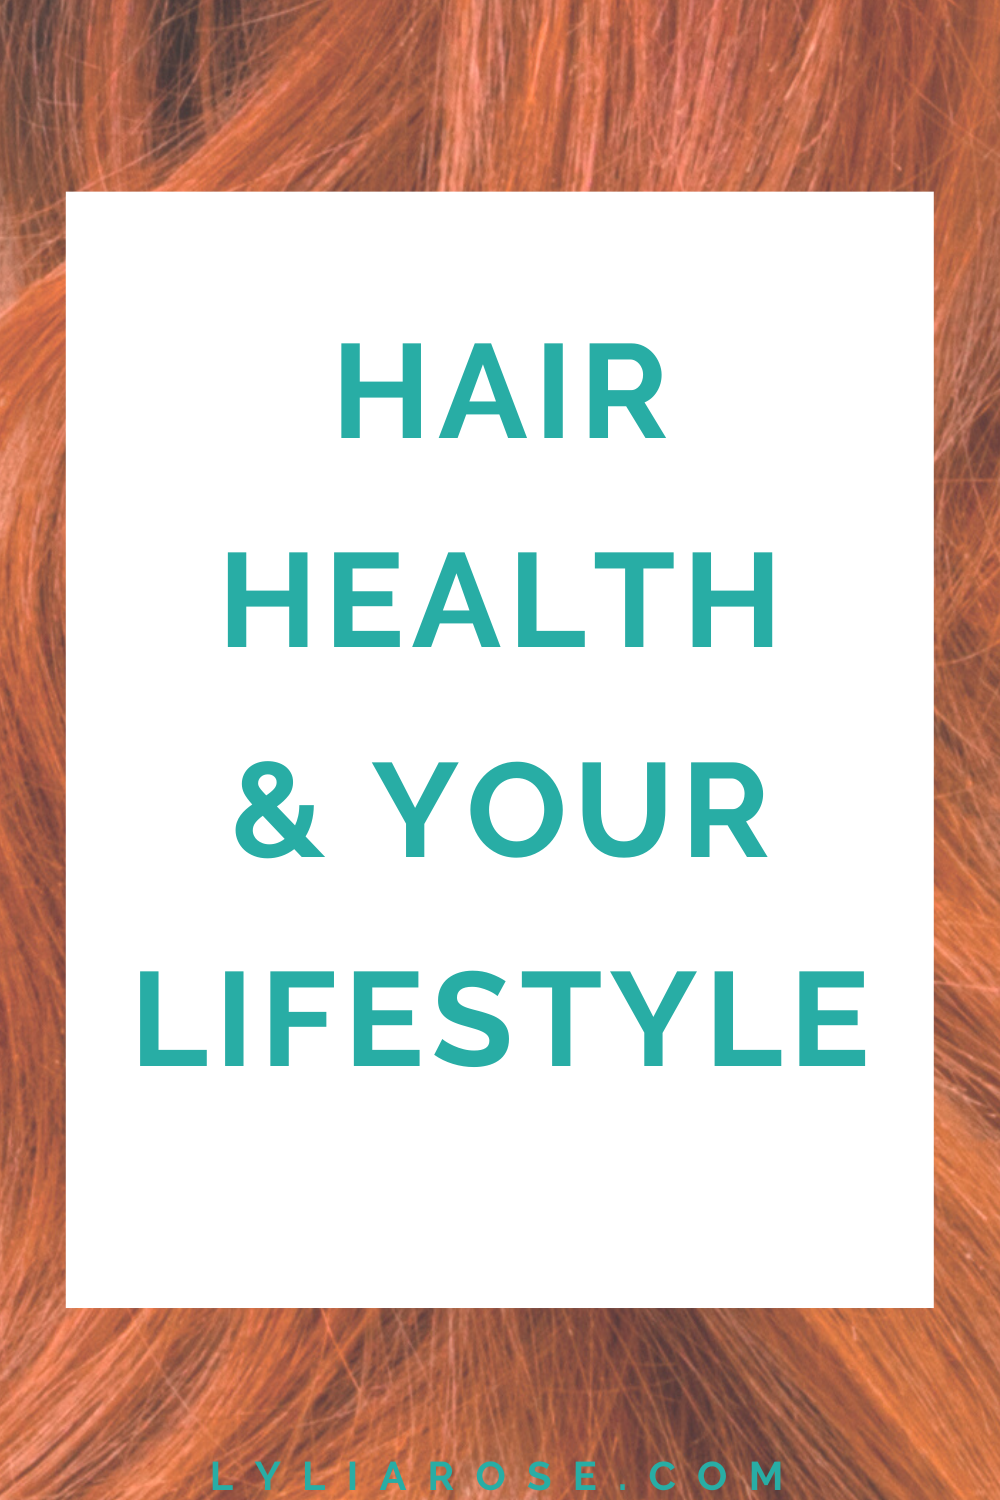 Hair health and your lifestyle